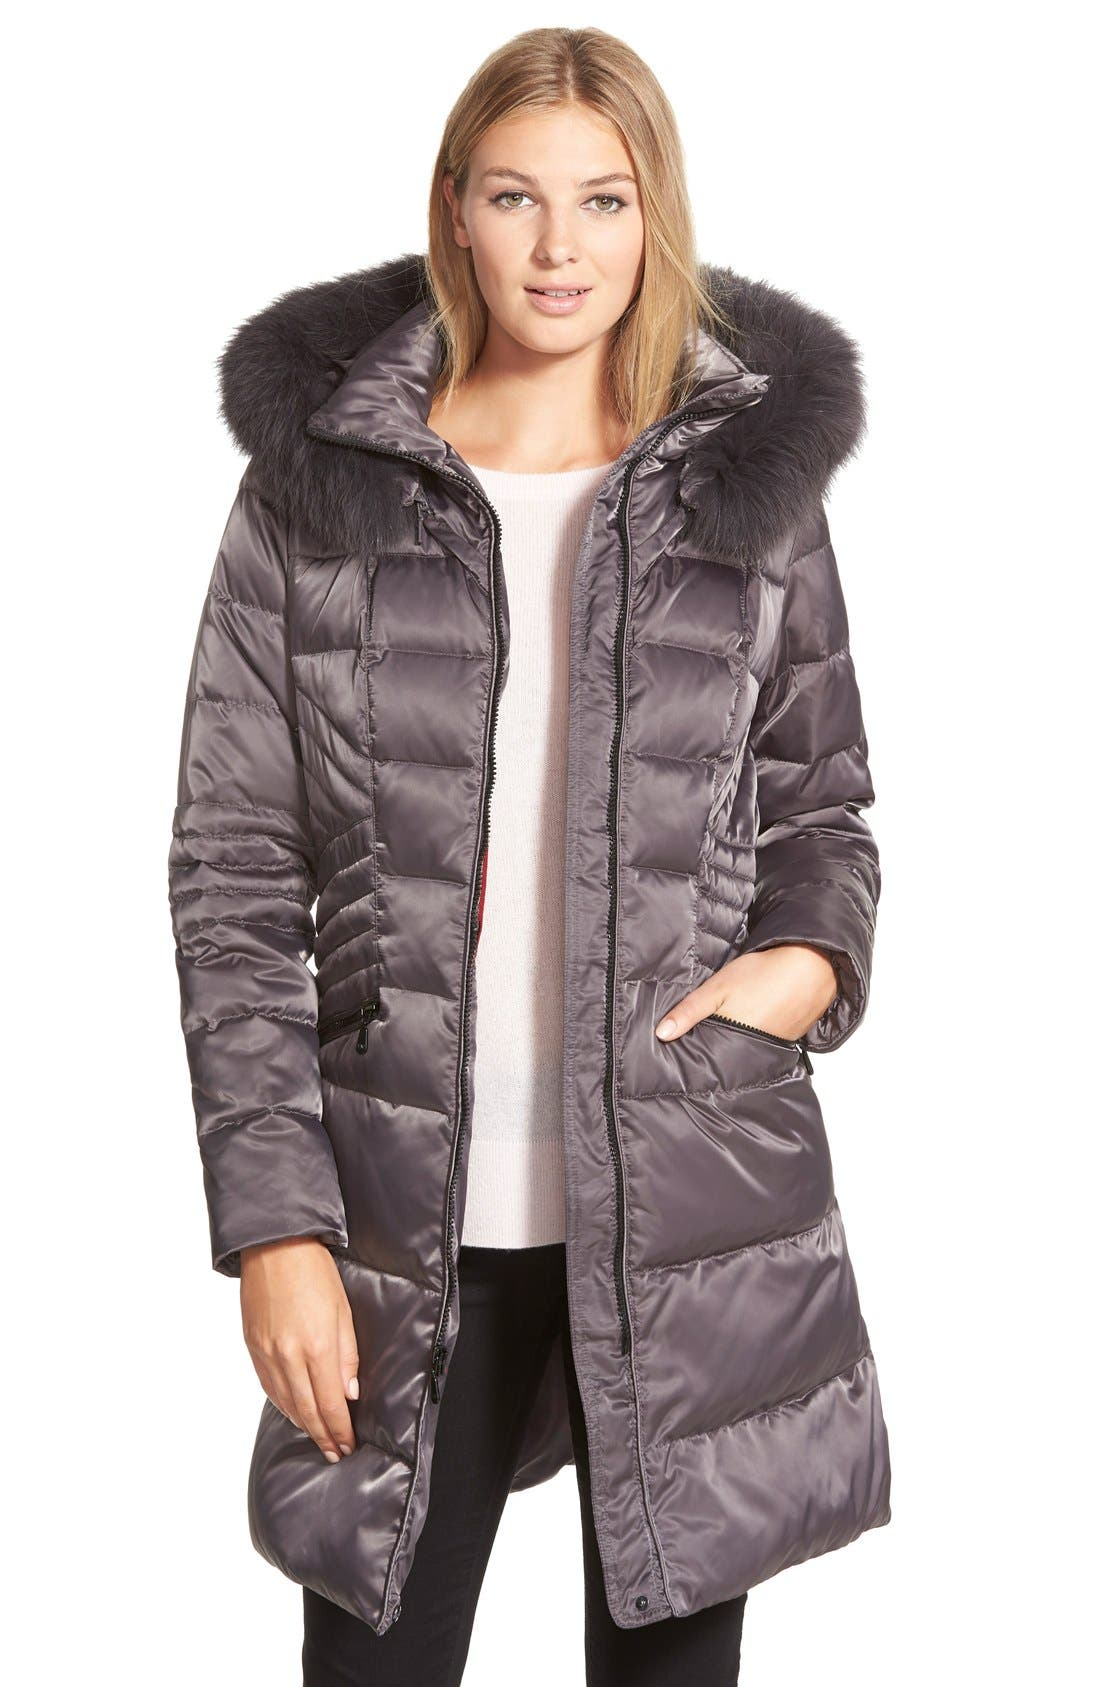 Main Image - 1 Madison Down & Feather Fill Coat with Genuine Fox Fur